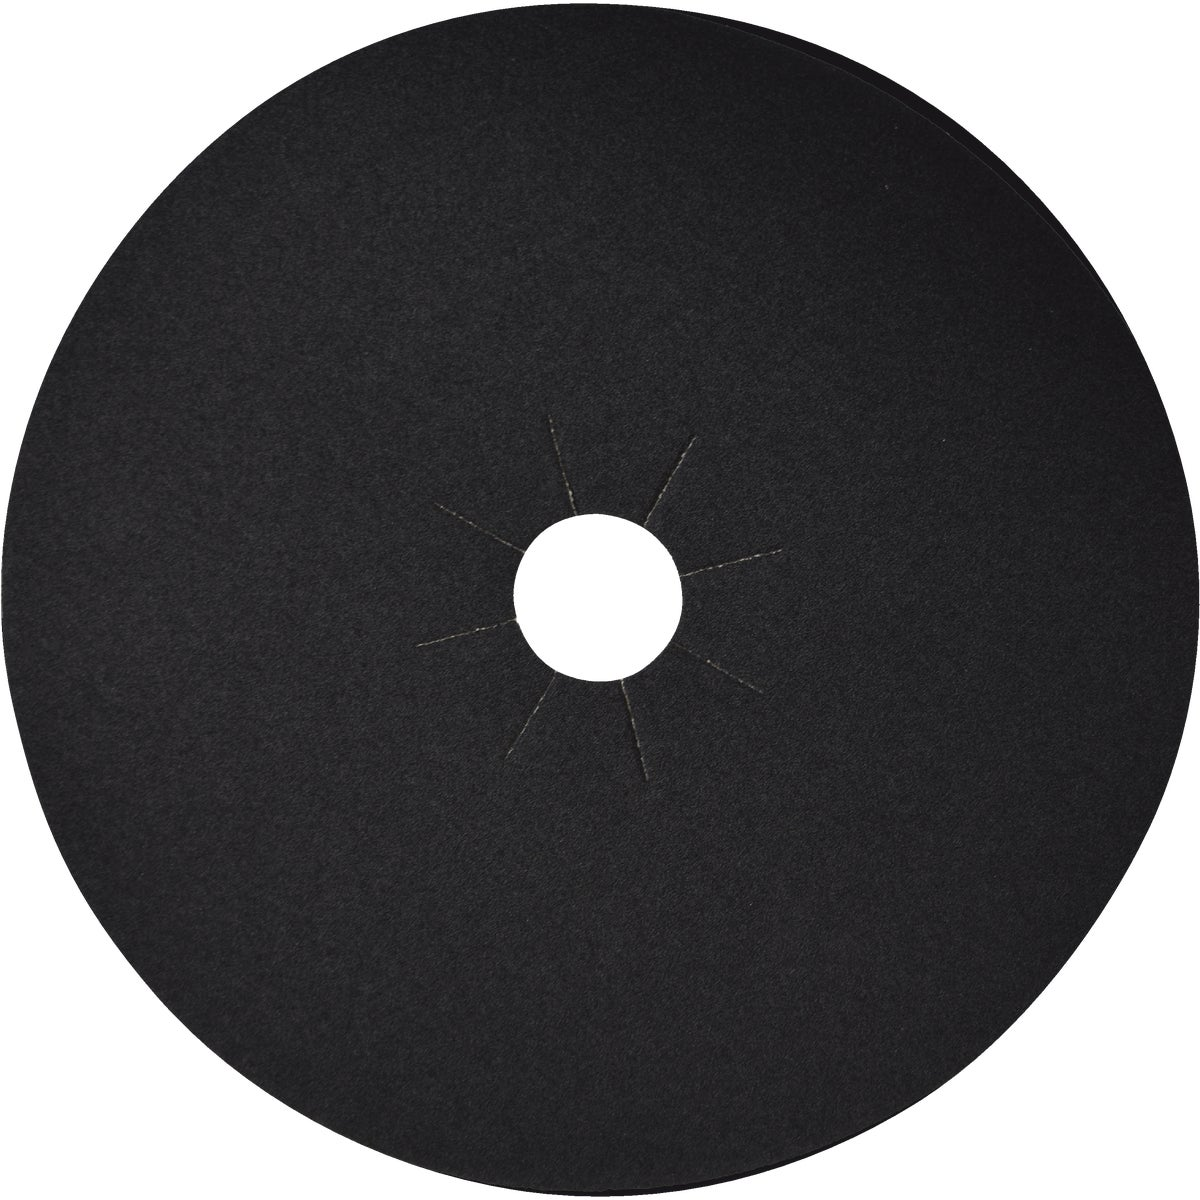 "16"" 36G FLR SANDING DISC - 007-816236 by Virginia Abrasives"